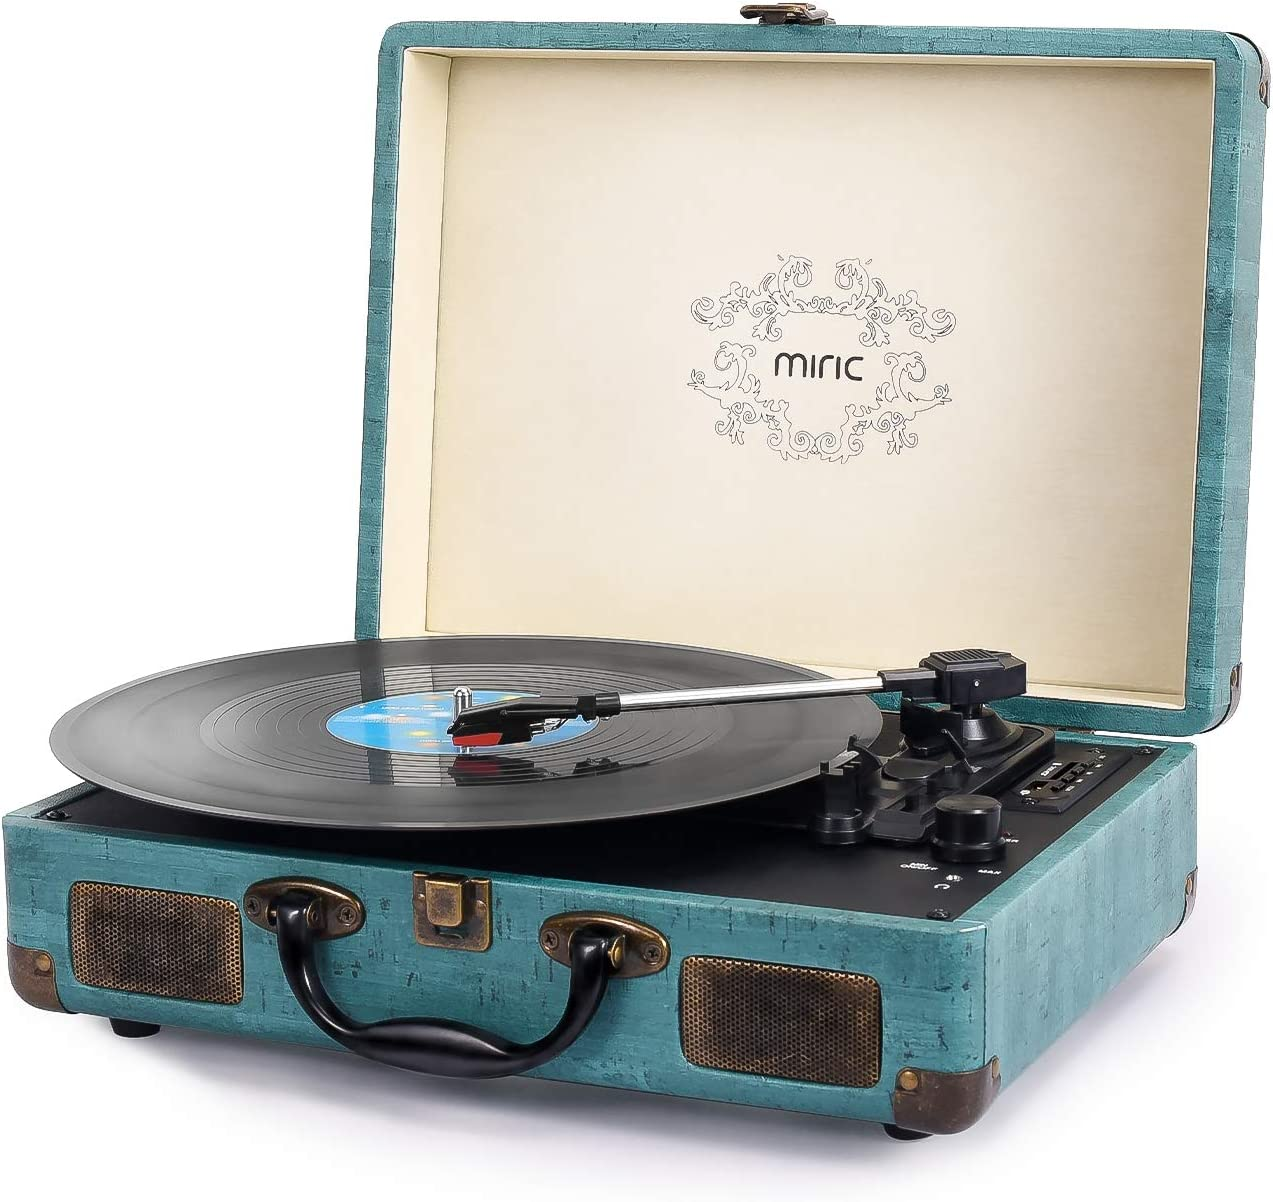 Record Player, Miric Suitcase Record Player with Speakers, 3 Speed Belt-Drive Vinyl Turntable, Portable Phonograph Record Player for 7/10/12inch Vinyl Records, Support USB/SD Vinyl Record Player